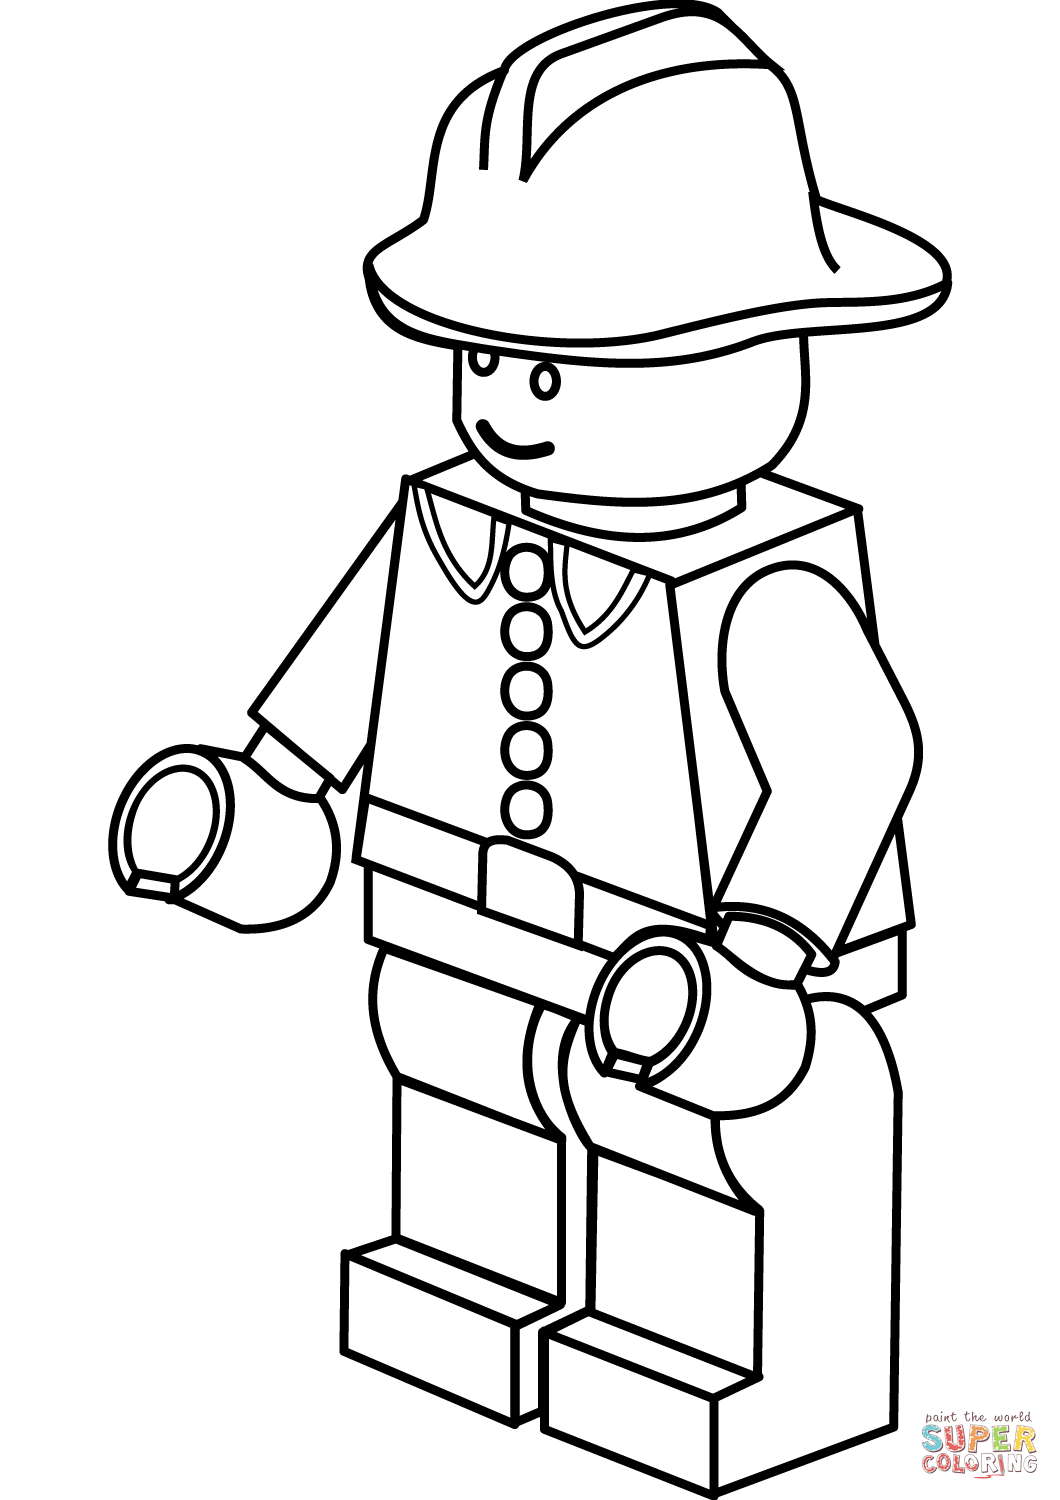 Coloring Pages Children Around The World - Coloring Home | 1500x1060